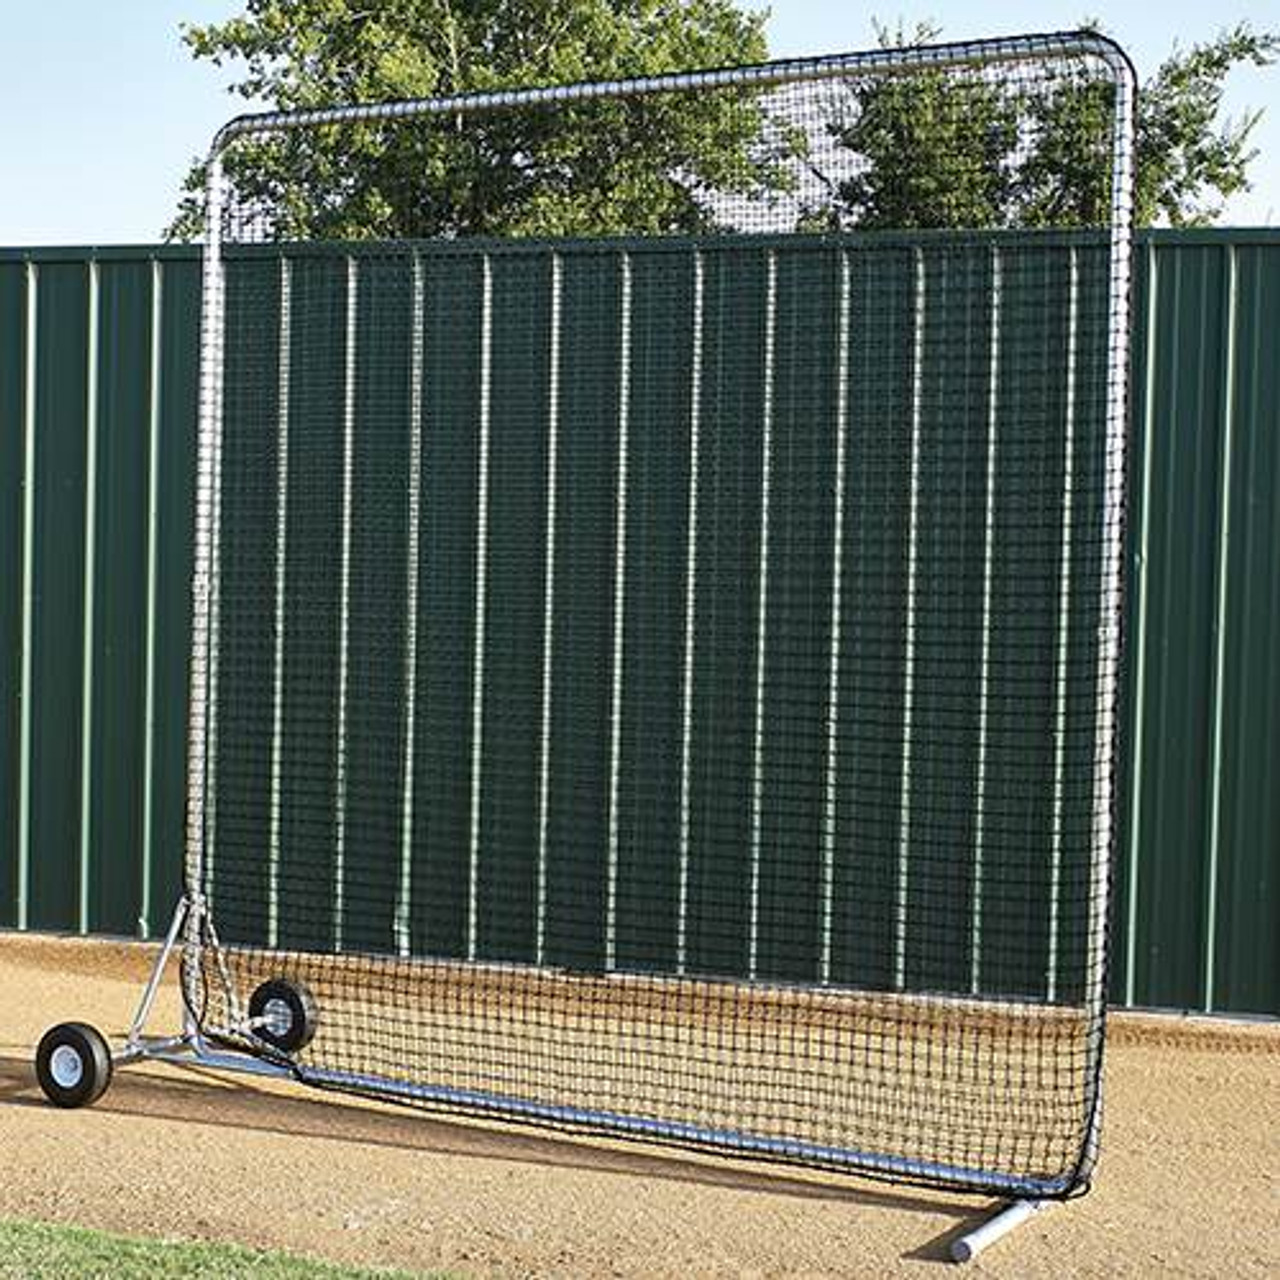 Baseball Protector Pro Base/Fungo Replacement Net 10' x 10'